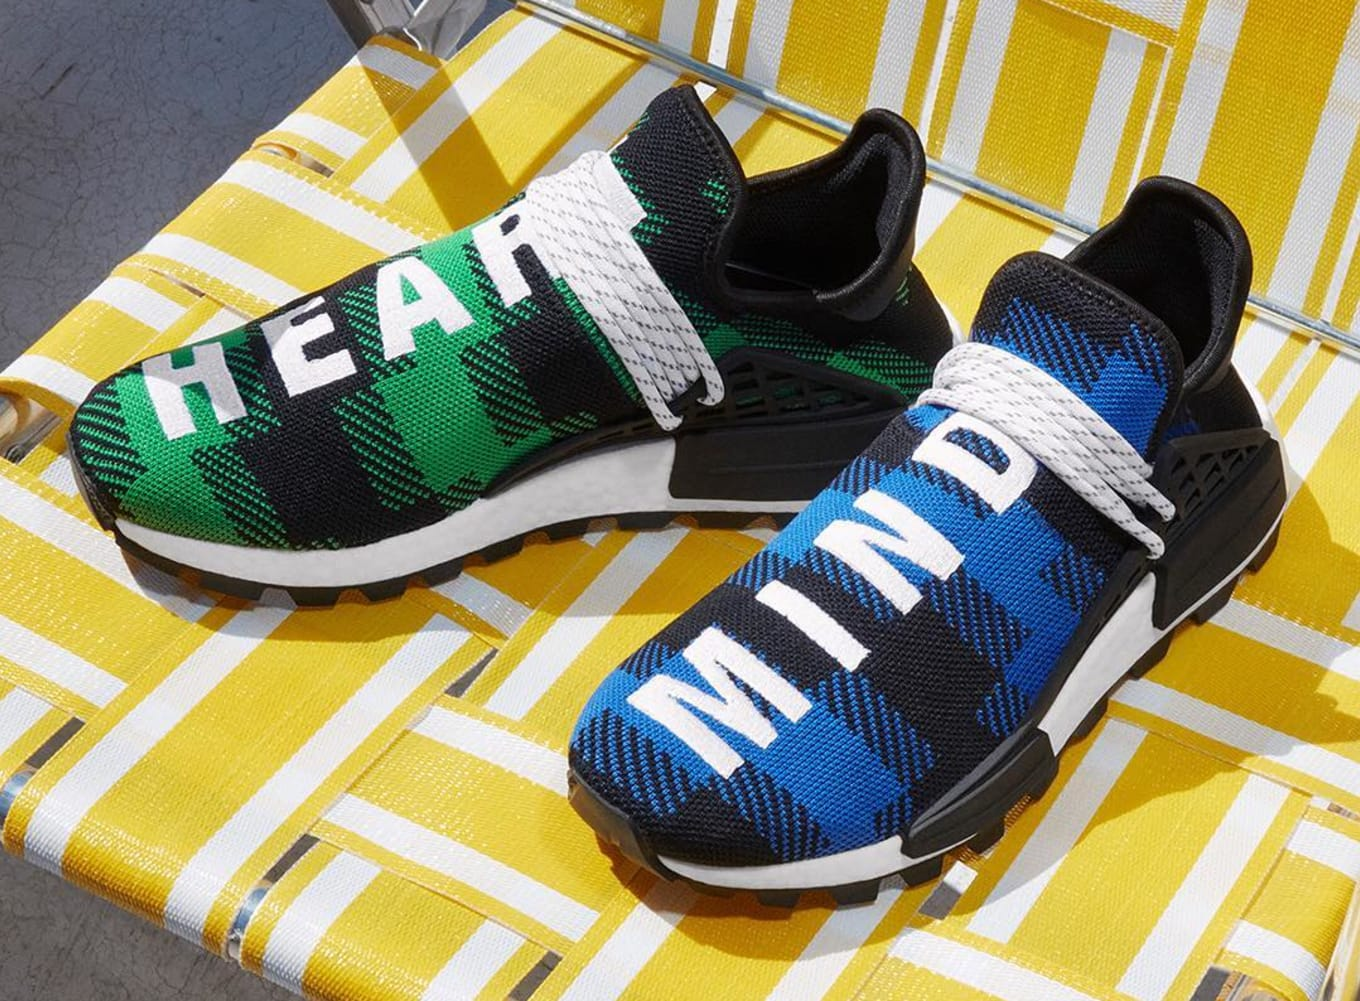 6867330aed8 Billionaire Boys Club x Adidas NMD Hu 'Digijack' Collection EF7387 ...